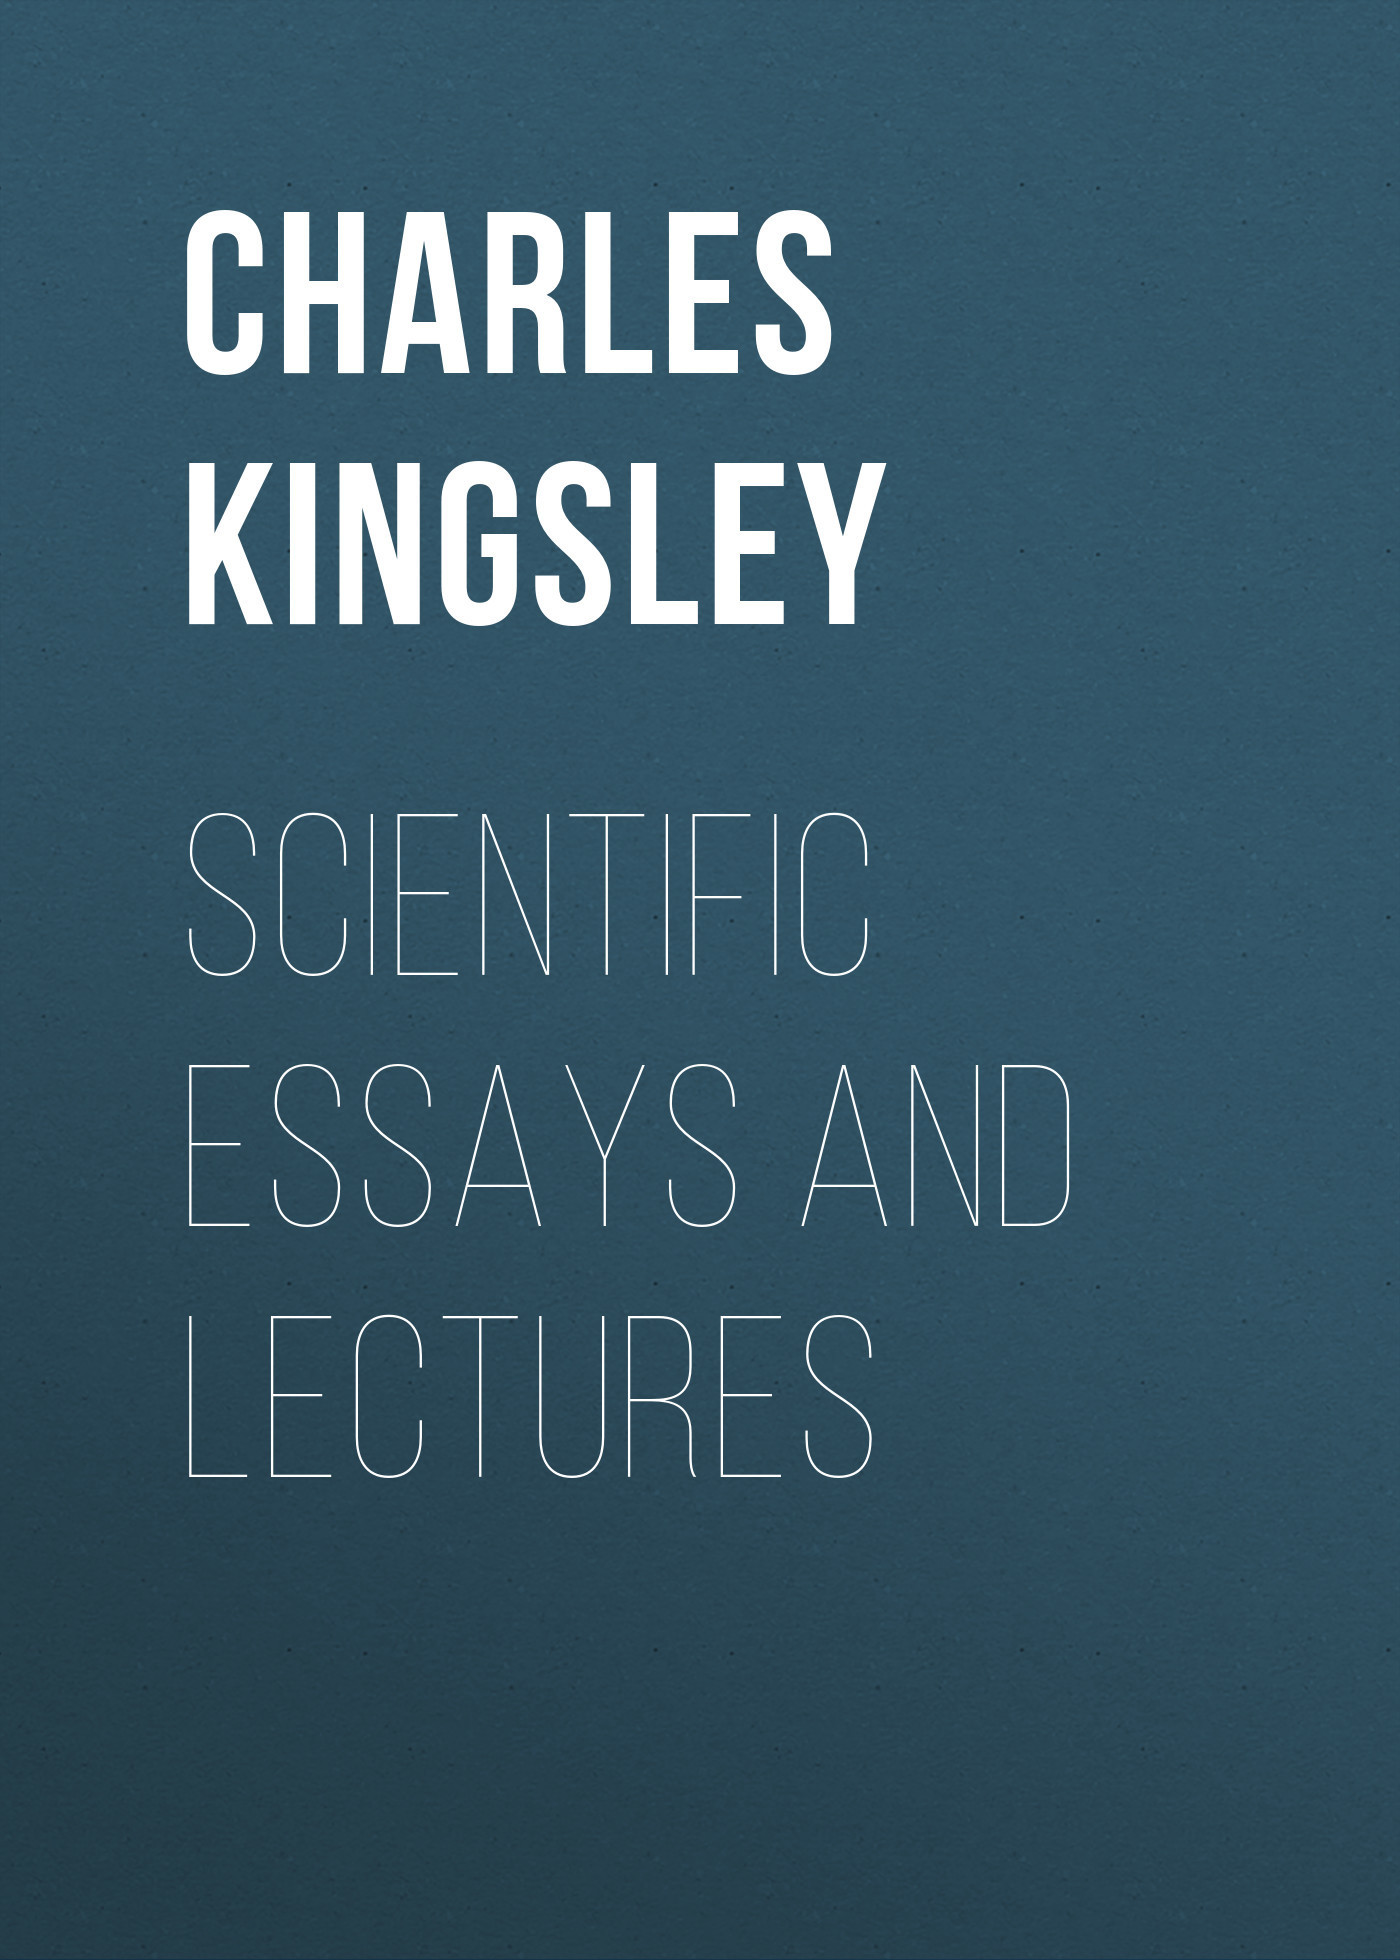 где купить Charles Kingsley Scientific Essays and Lectures дешево